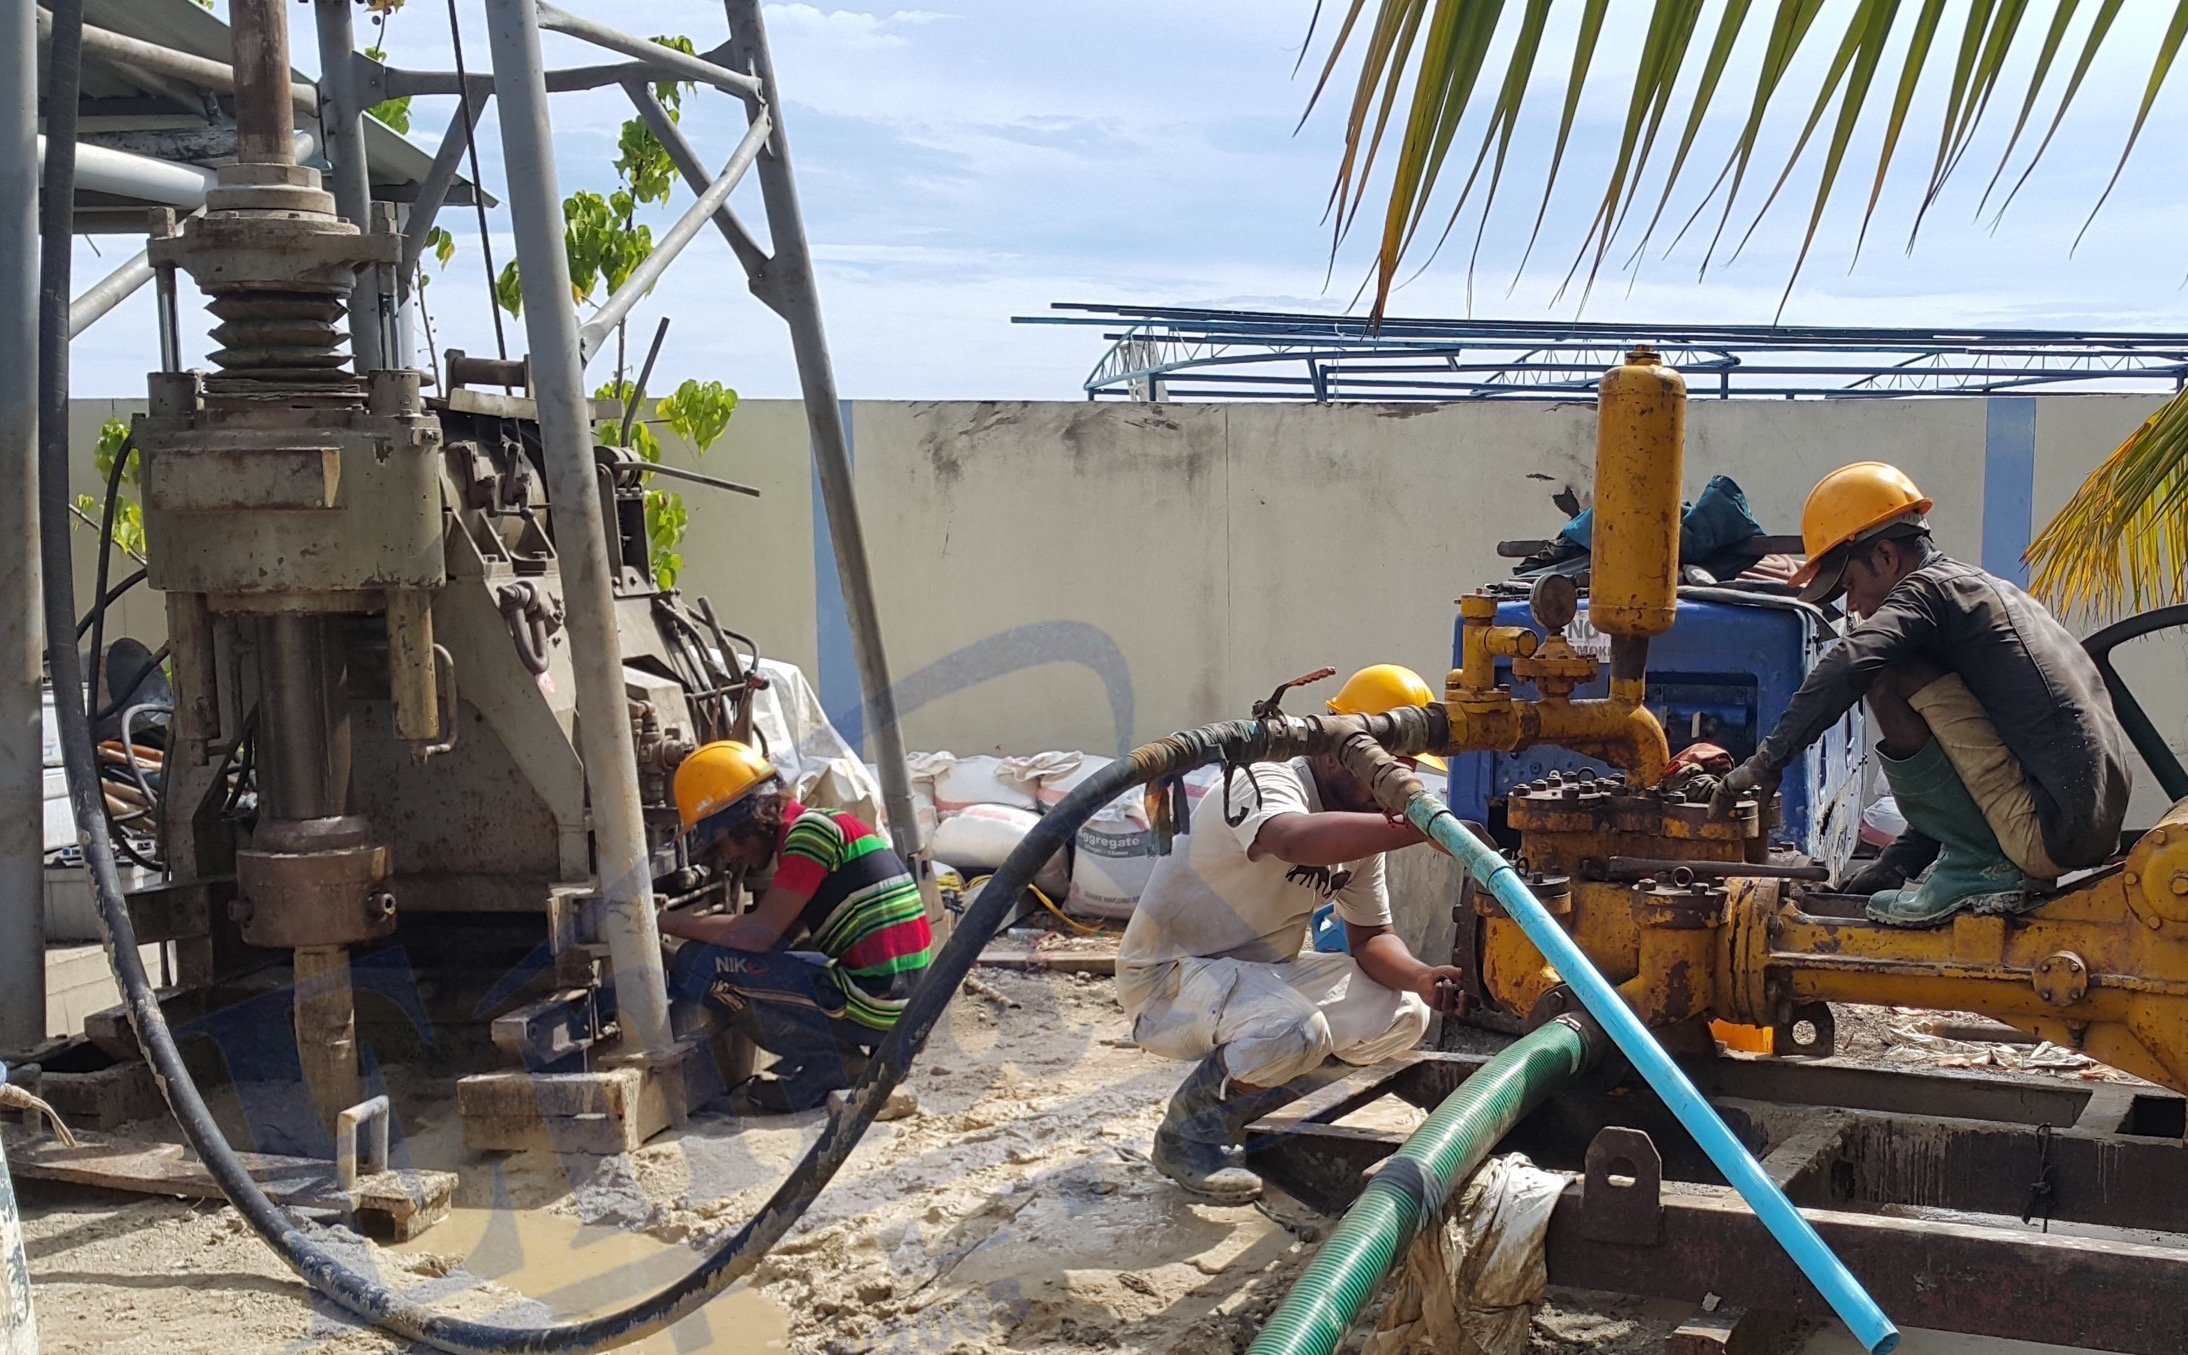 Borehole drilling work is ongoing